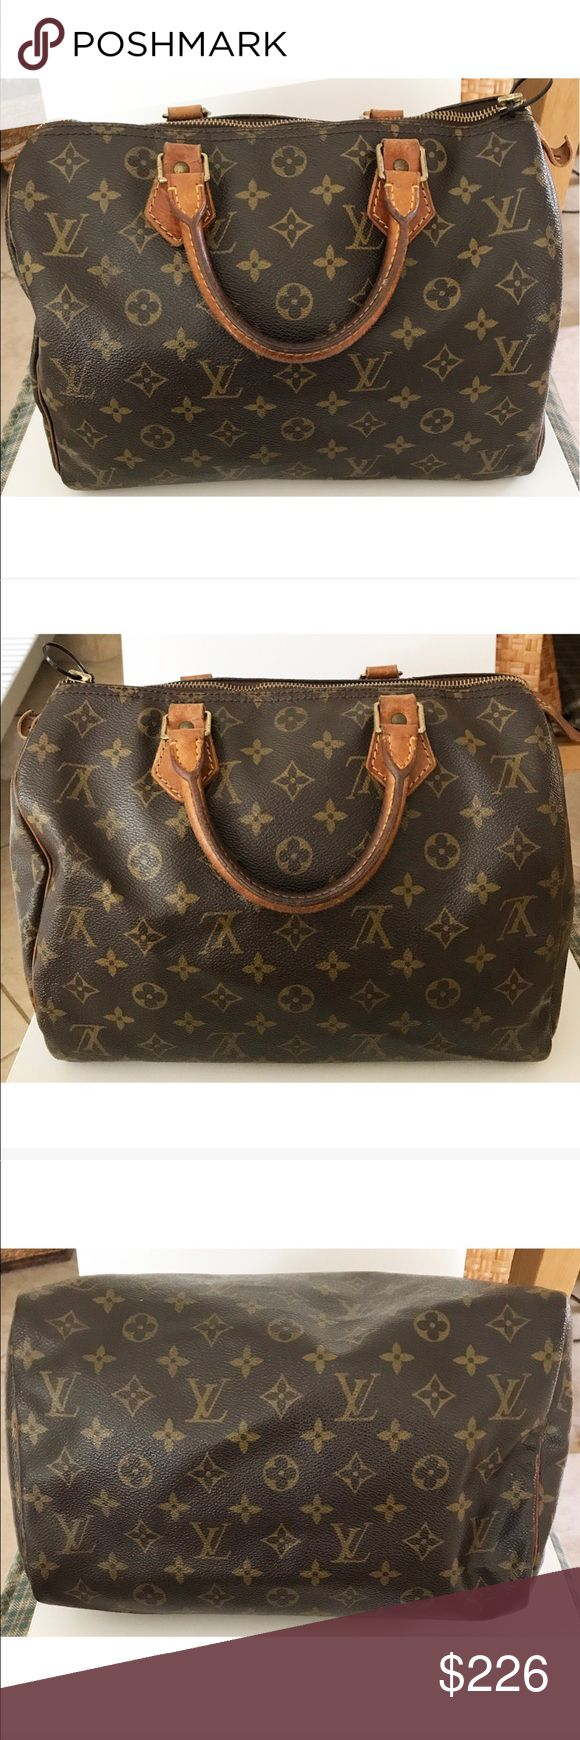 """💯Authentic Louis Vuitton Monogram Speedy 30 Bag Authentic Louis Vuitton Speedy 30 bag. Made in France, 12""""L x 8.3""""H x 6.7""""D, date code SP0965. Monogram leather has darkened in color, scuffs, minor cracks near zipper, and dirt marks. Leather trim/handles shows signs of aging, wear, scuffs, and darkening on handles. Leather tab and zipper pull came off, but zipper still works (will include in case you want to fix). Hardware has fading and scratches. Interior has dirt marks and minor rips. Bag…"""